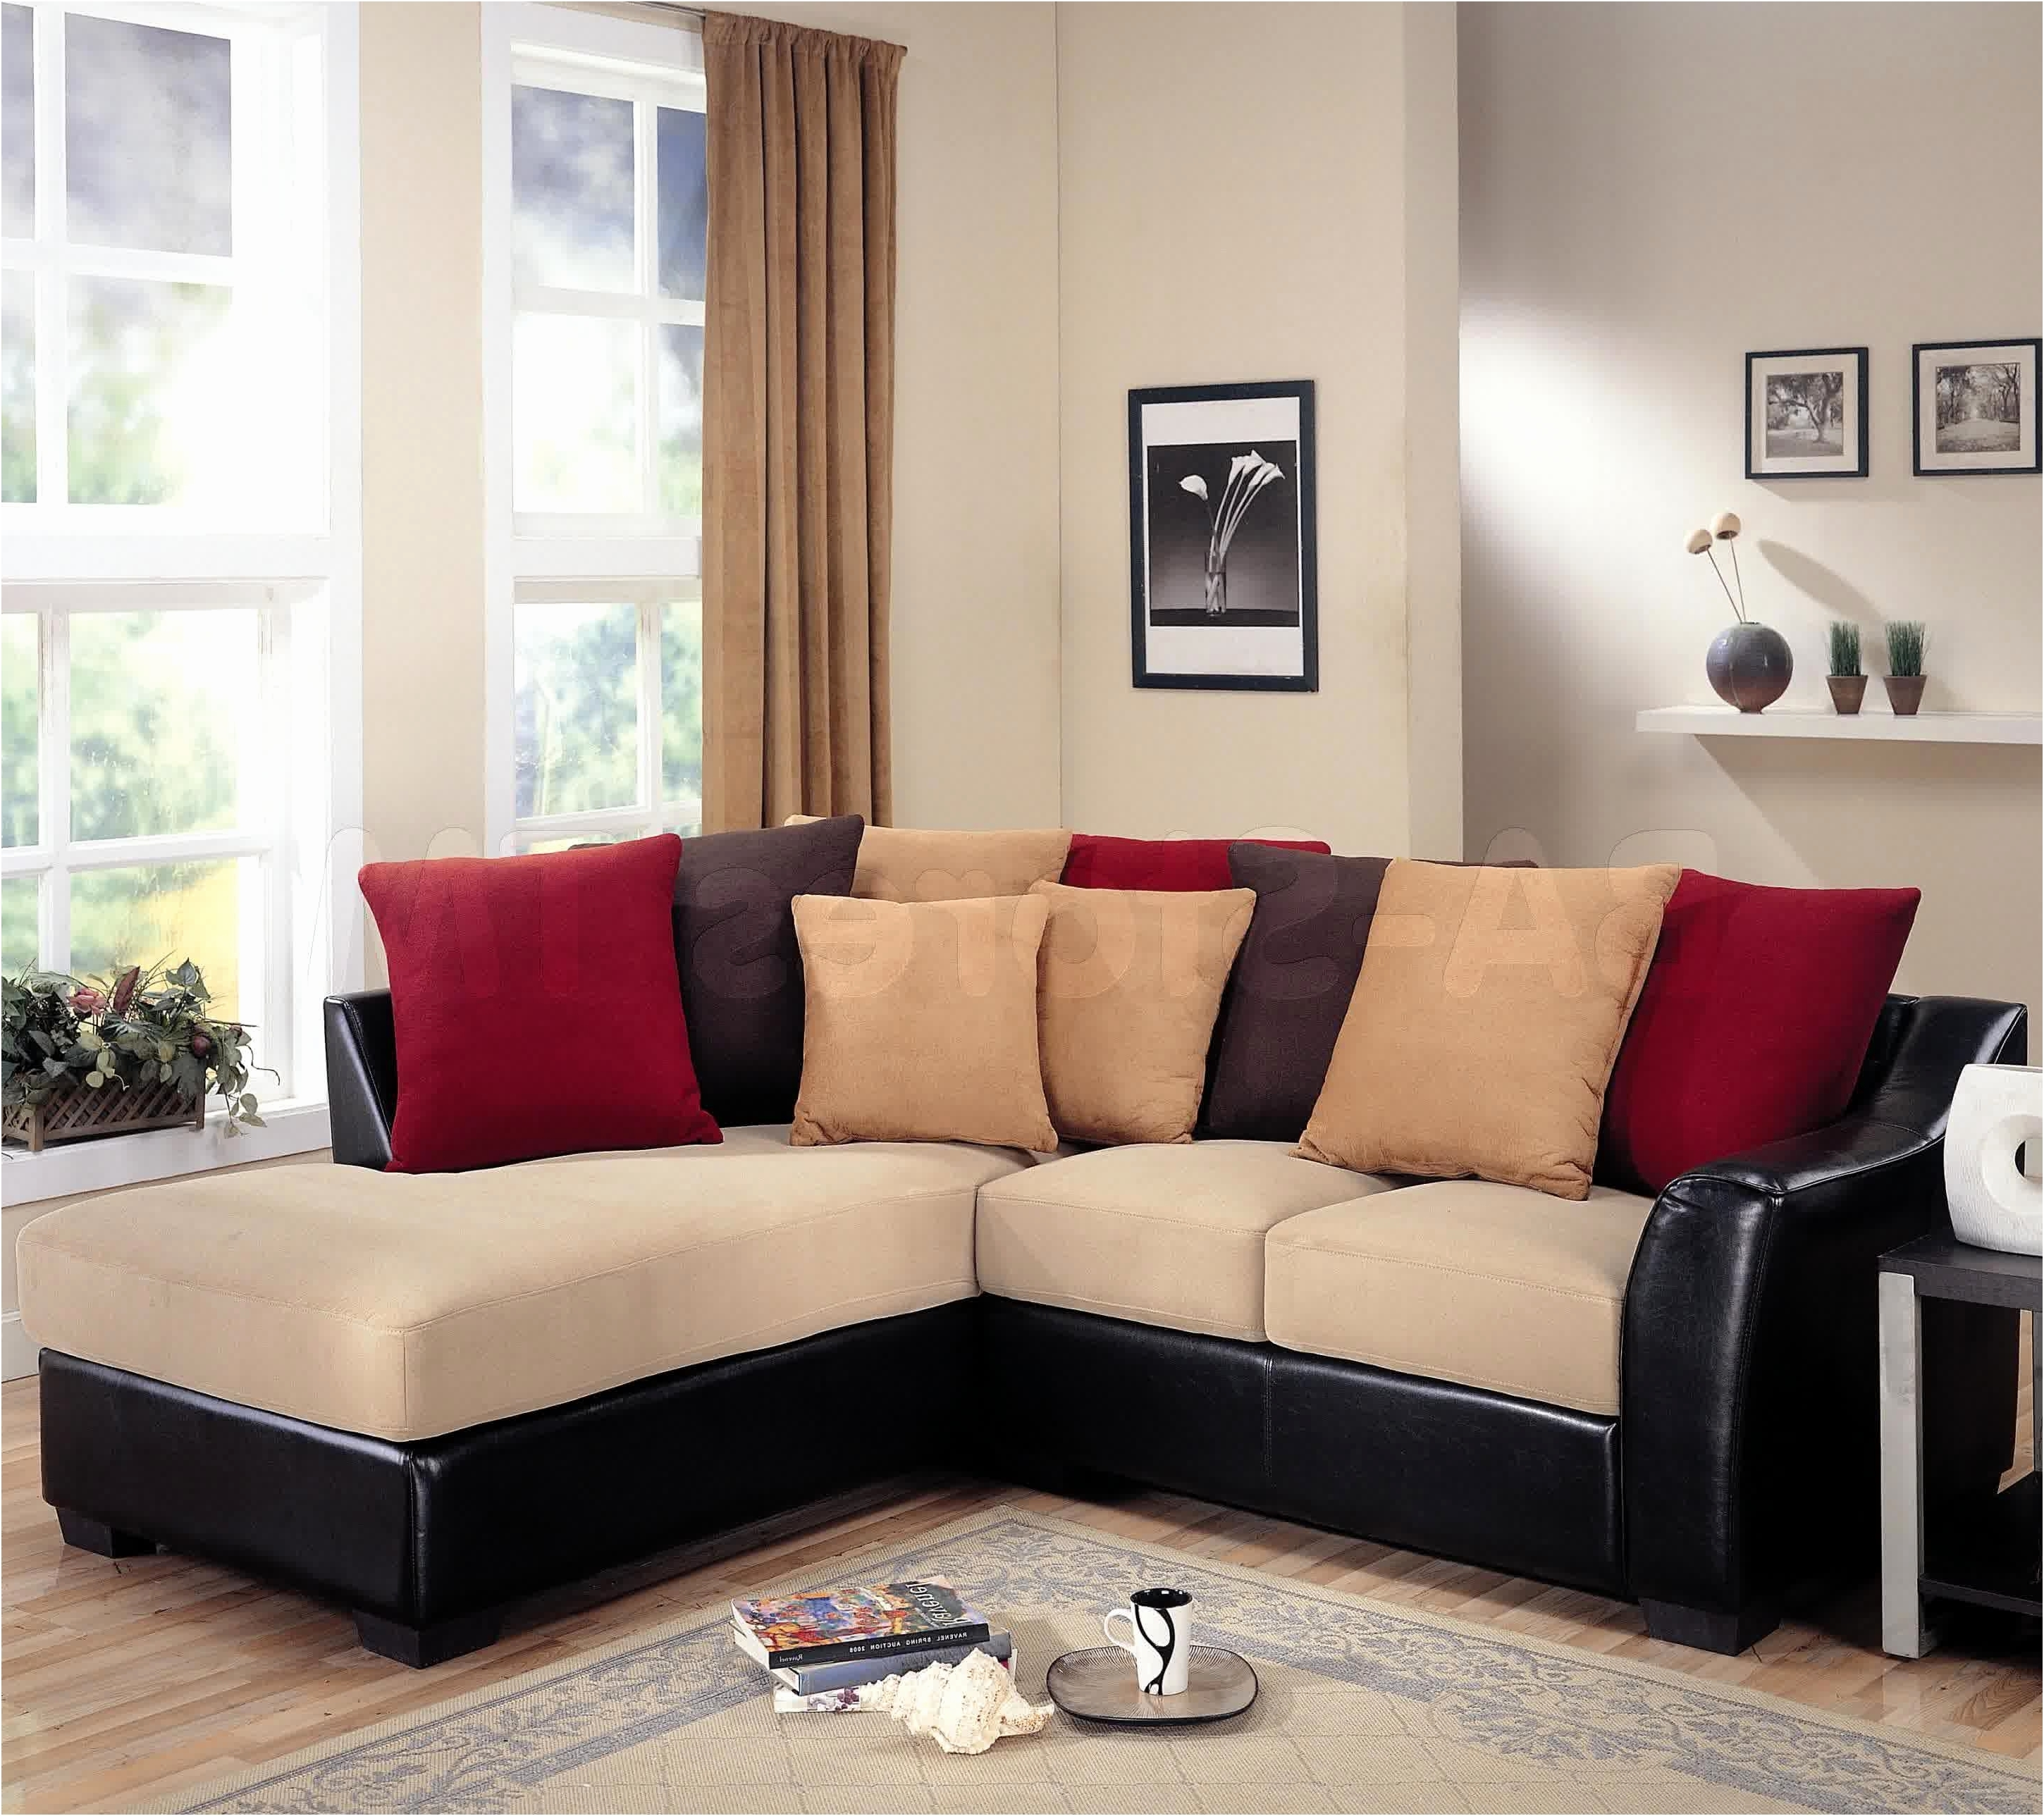 Trendy Fresh Sears Leather Sofa New – Intuisiblog With Sears Sectional Sofas (View 13 of 15)